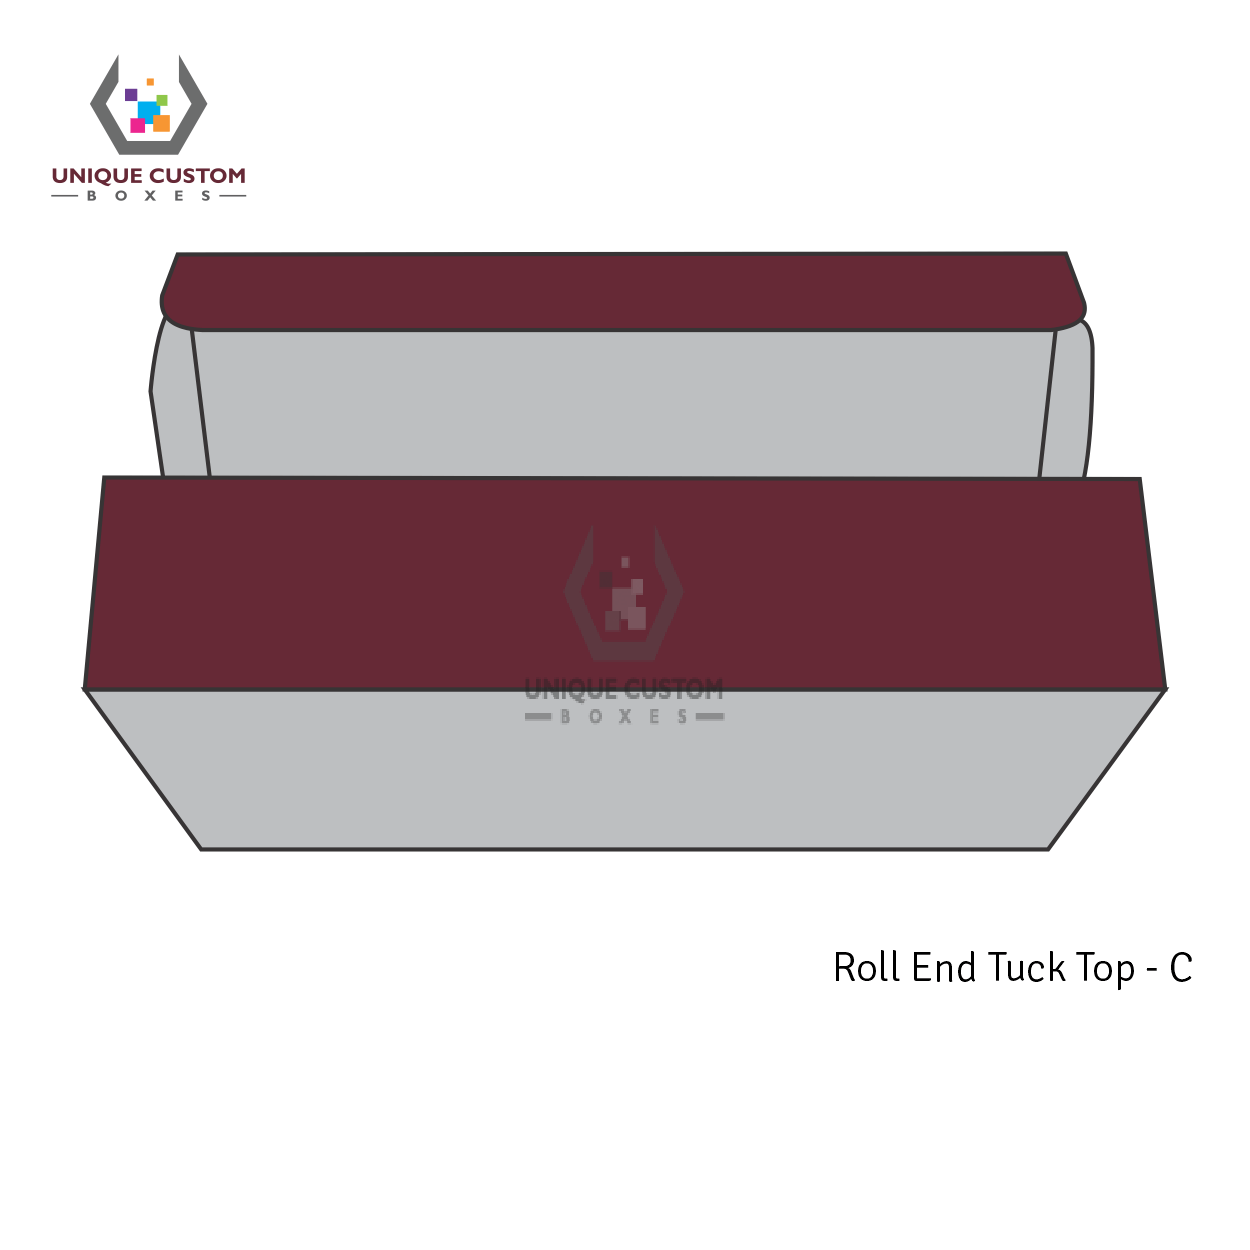 Roll End Tuck Top-2